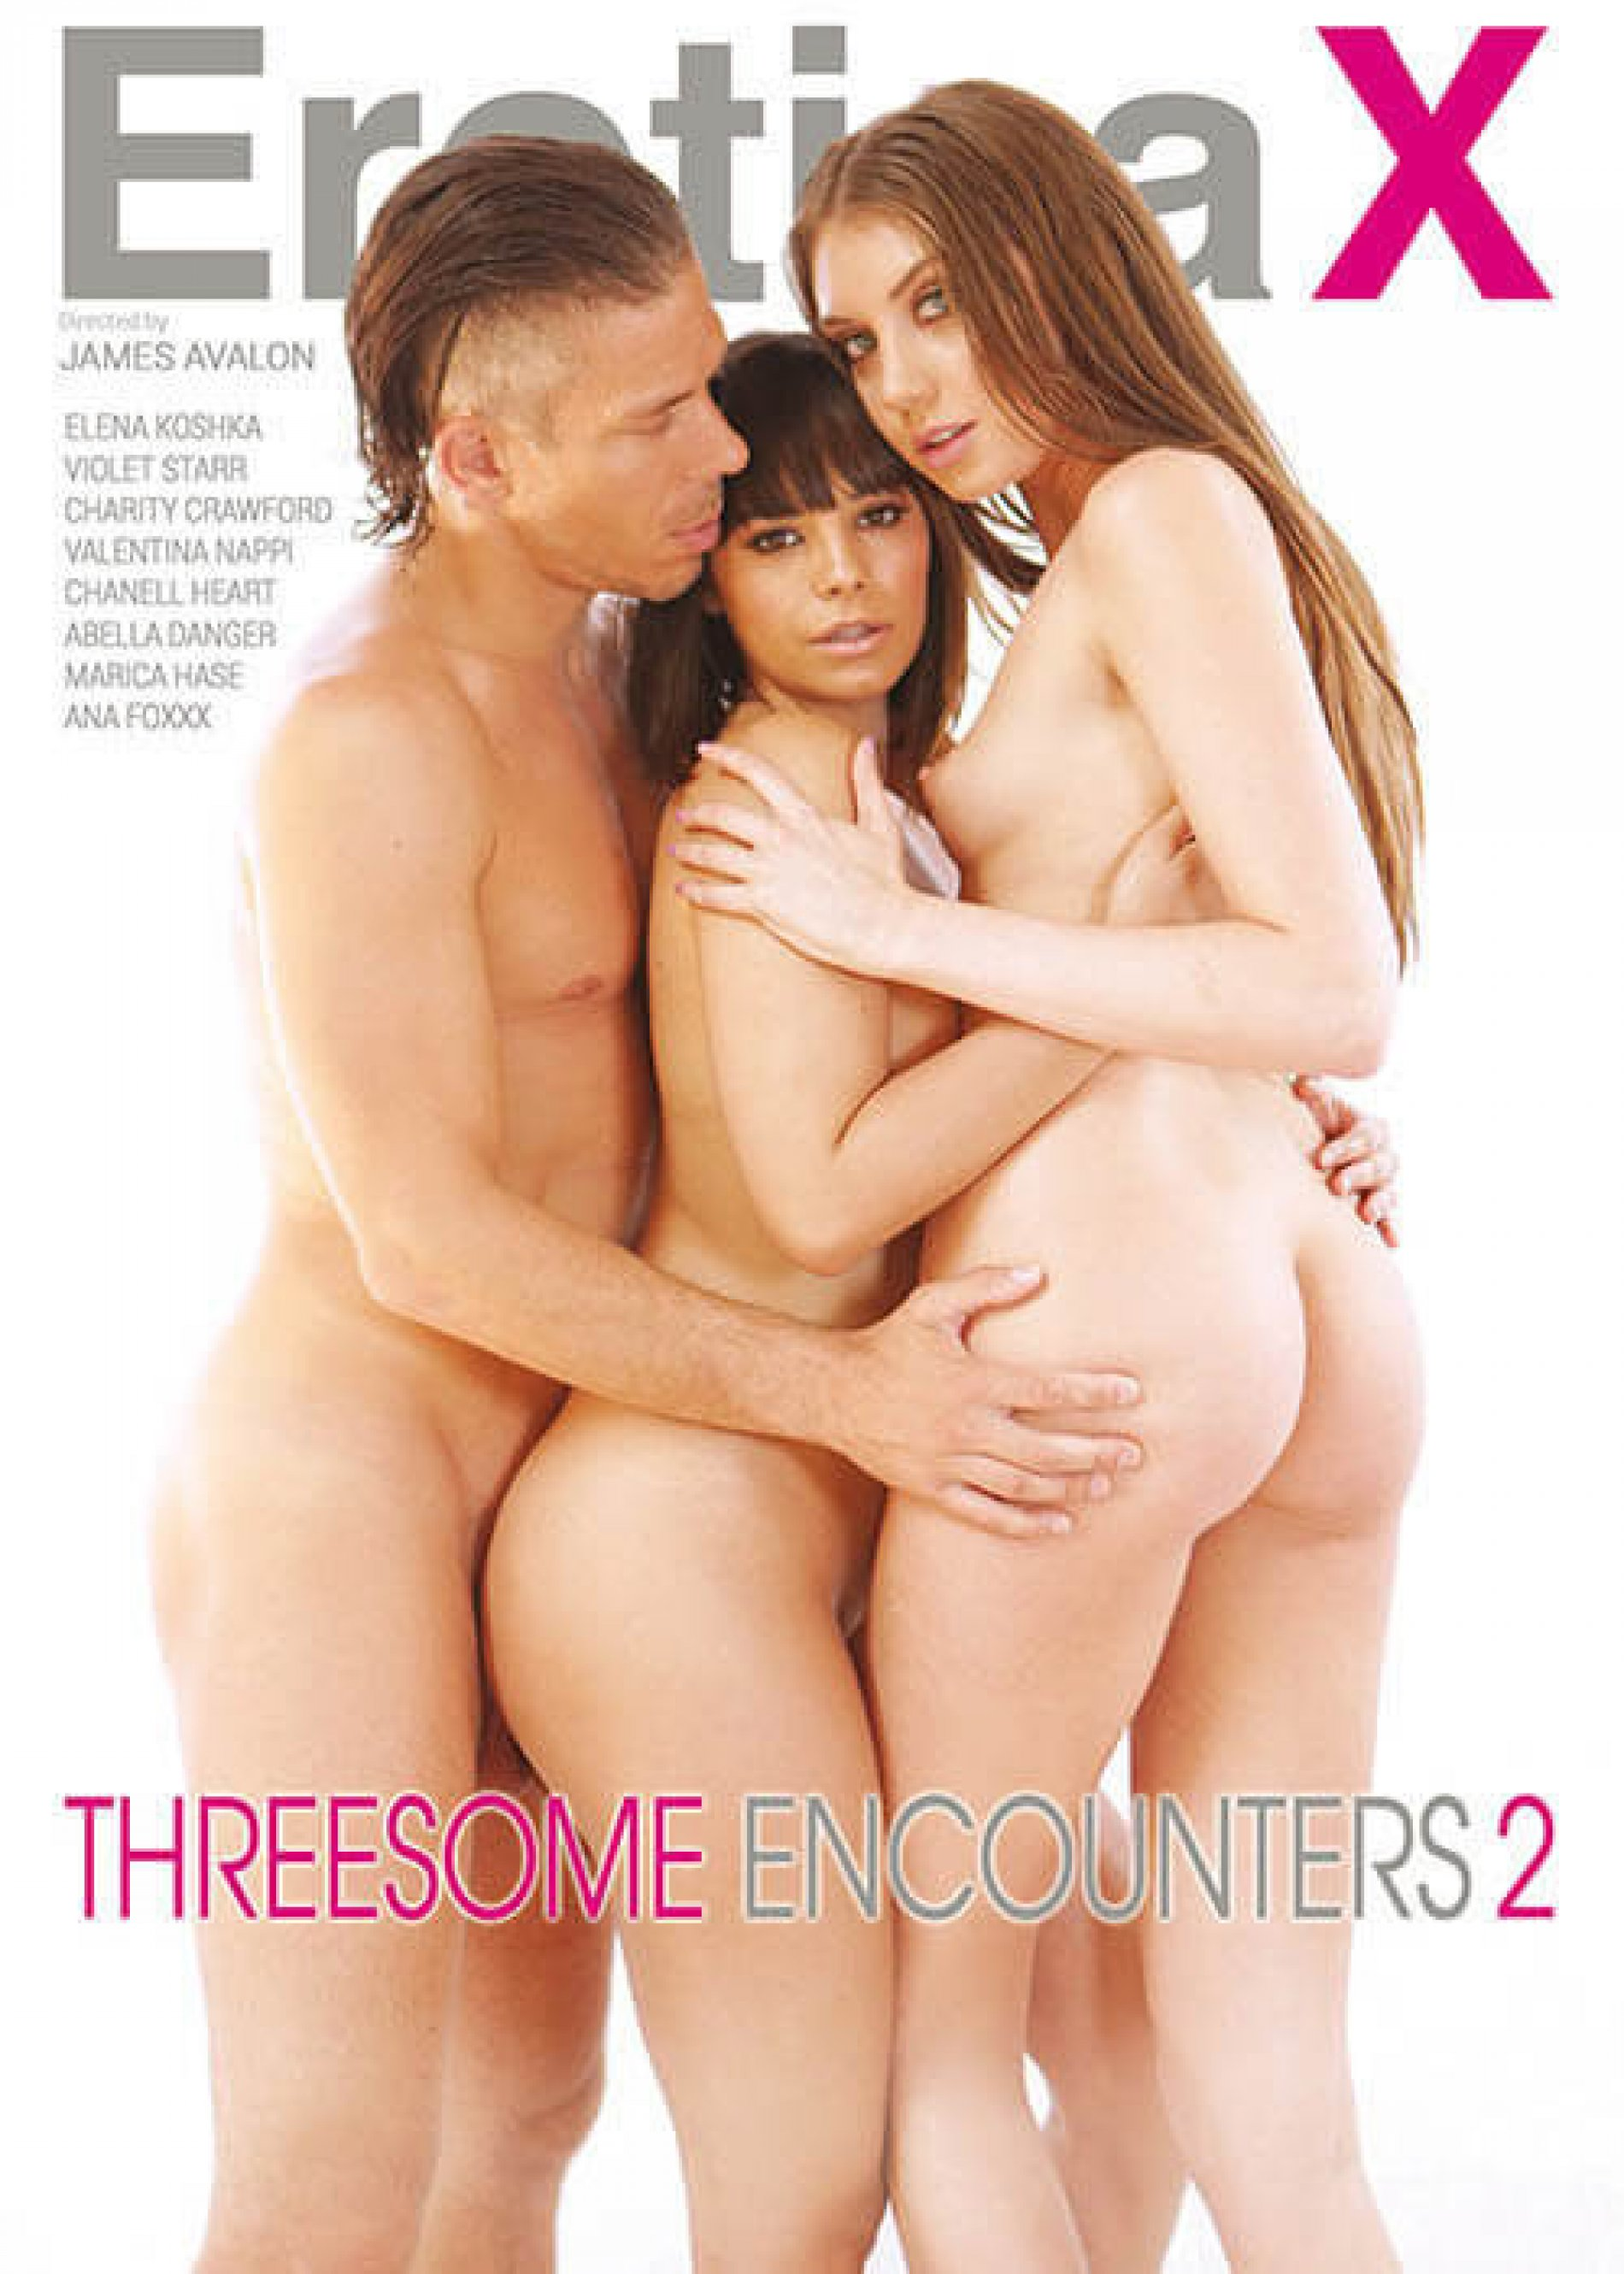 Threesome encounters vol.2